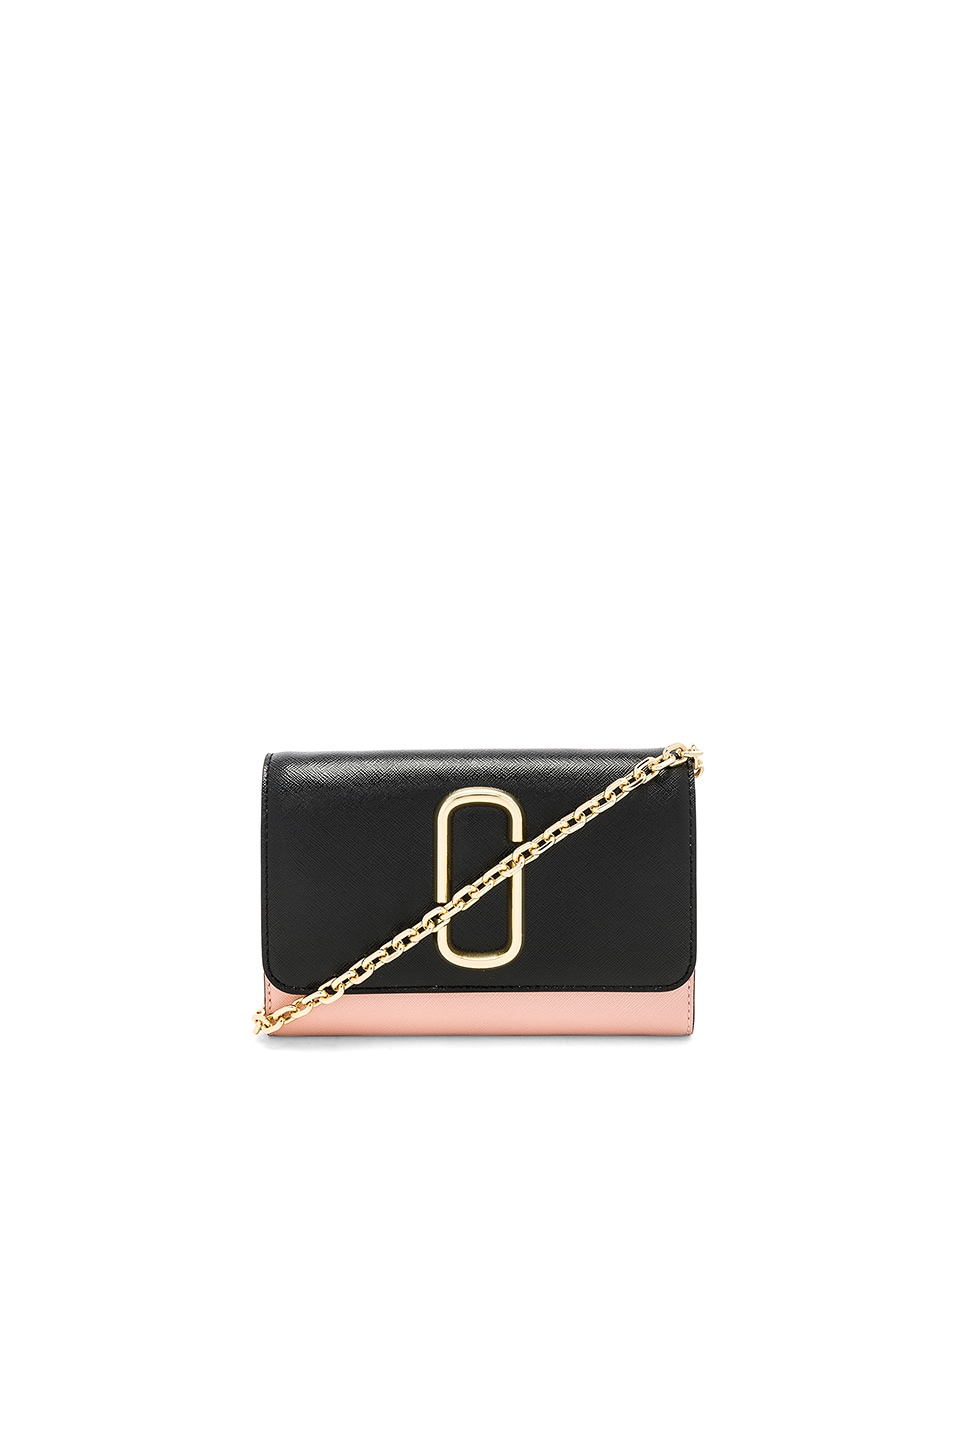 Marc Jacobs Wallet On Chain Bag in Black & Rose